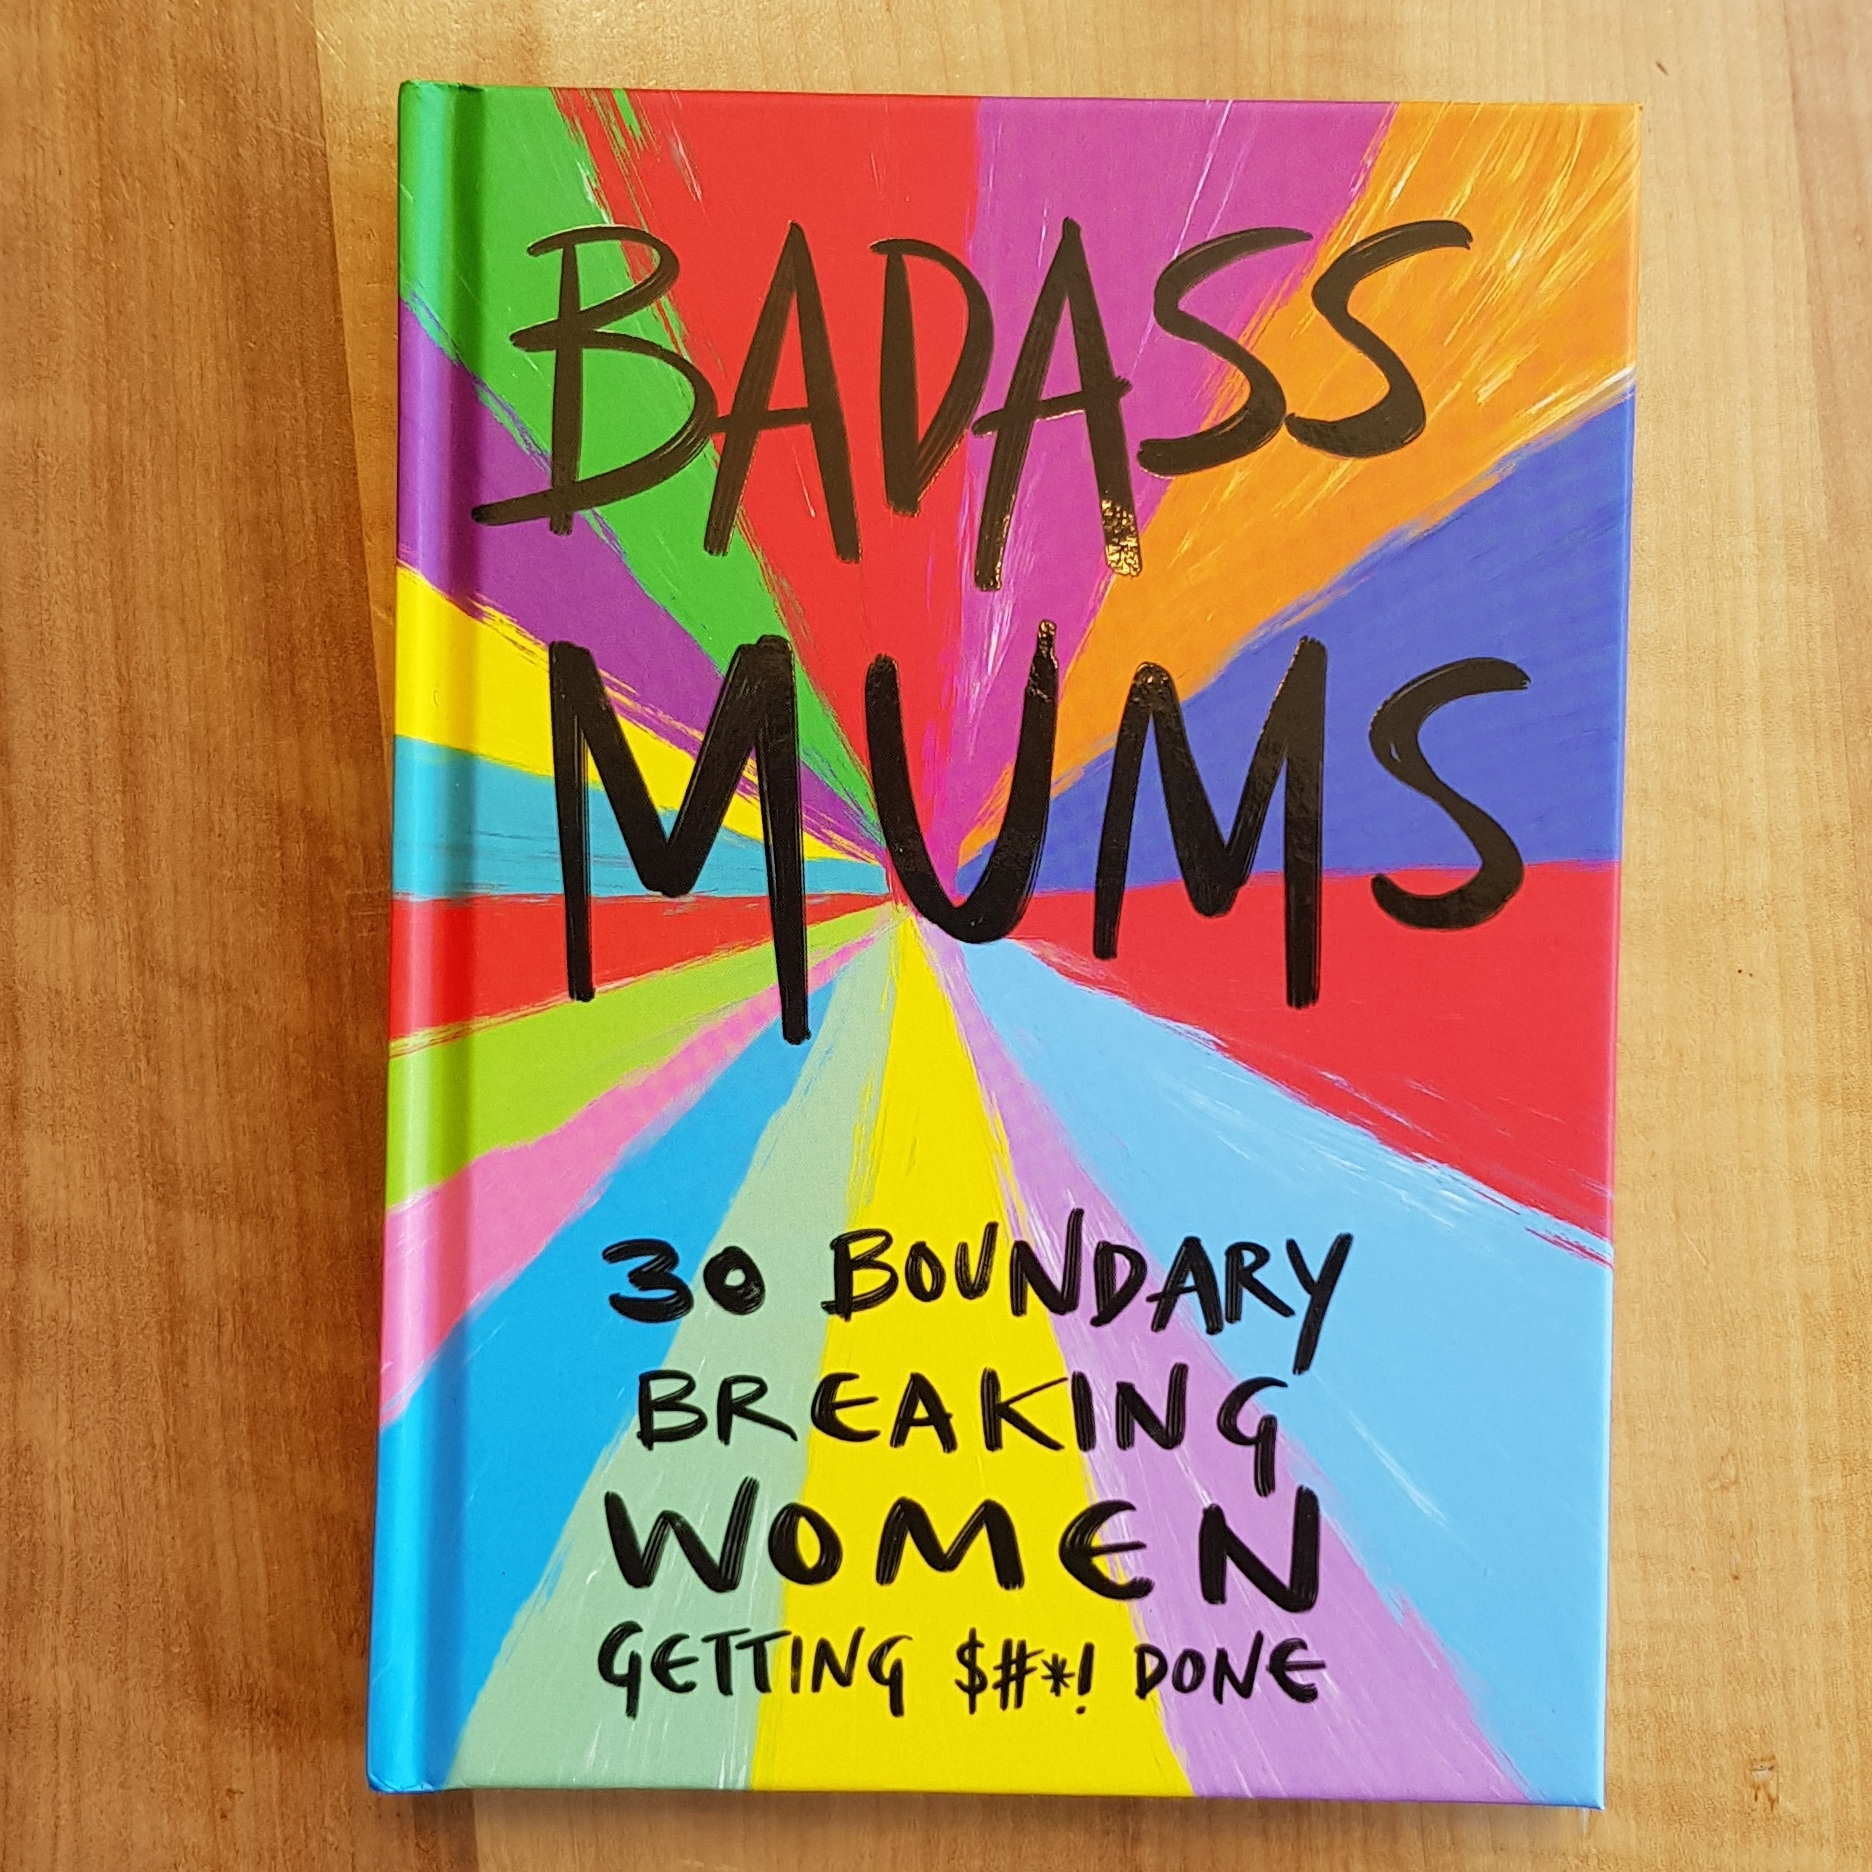 For your Badass!